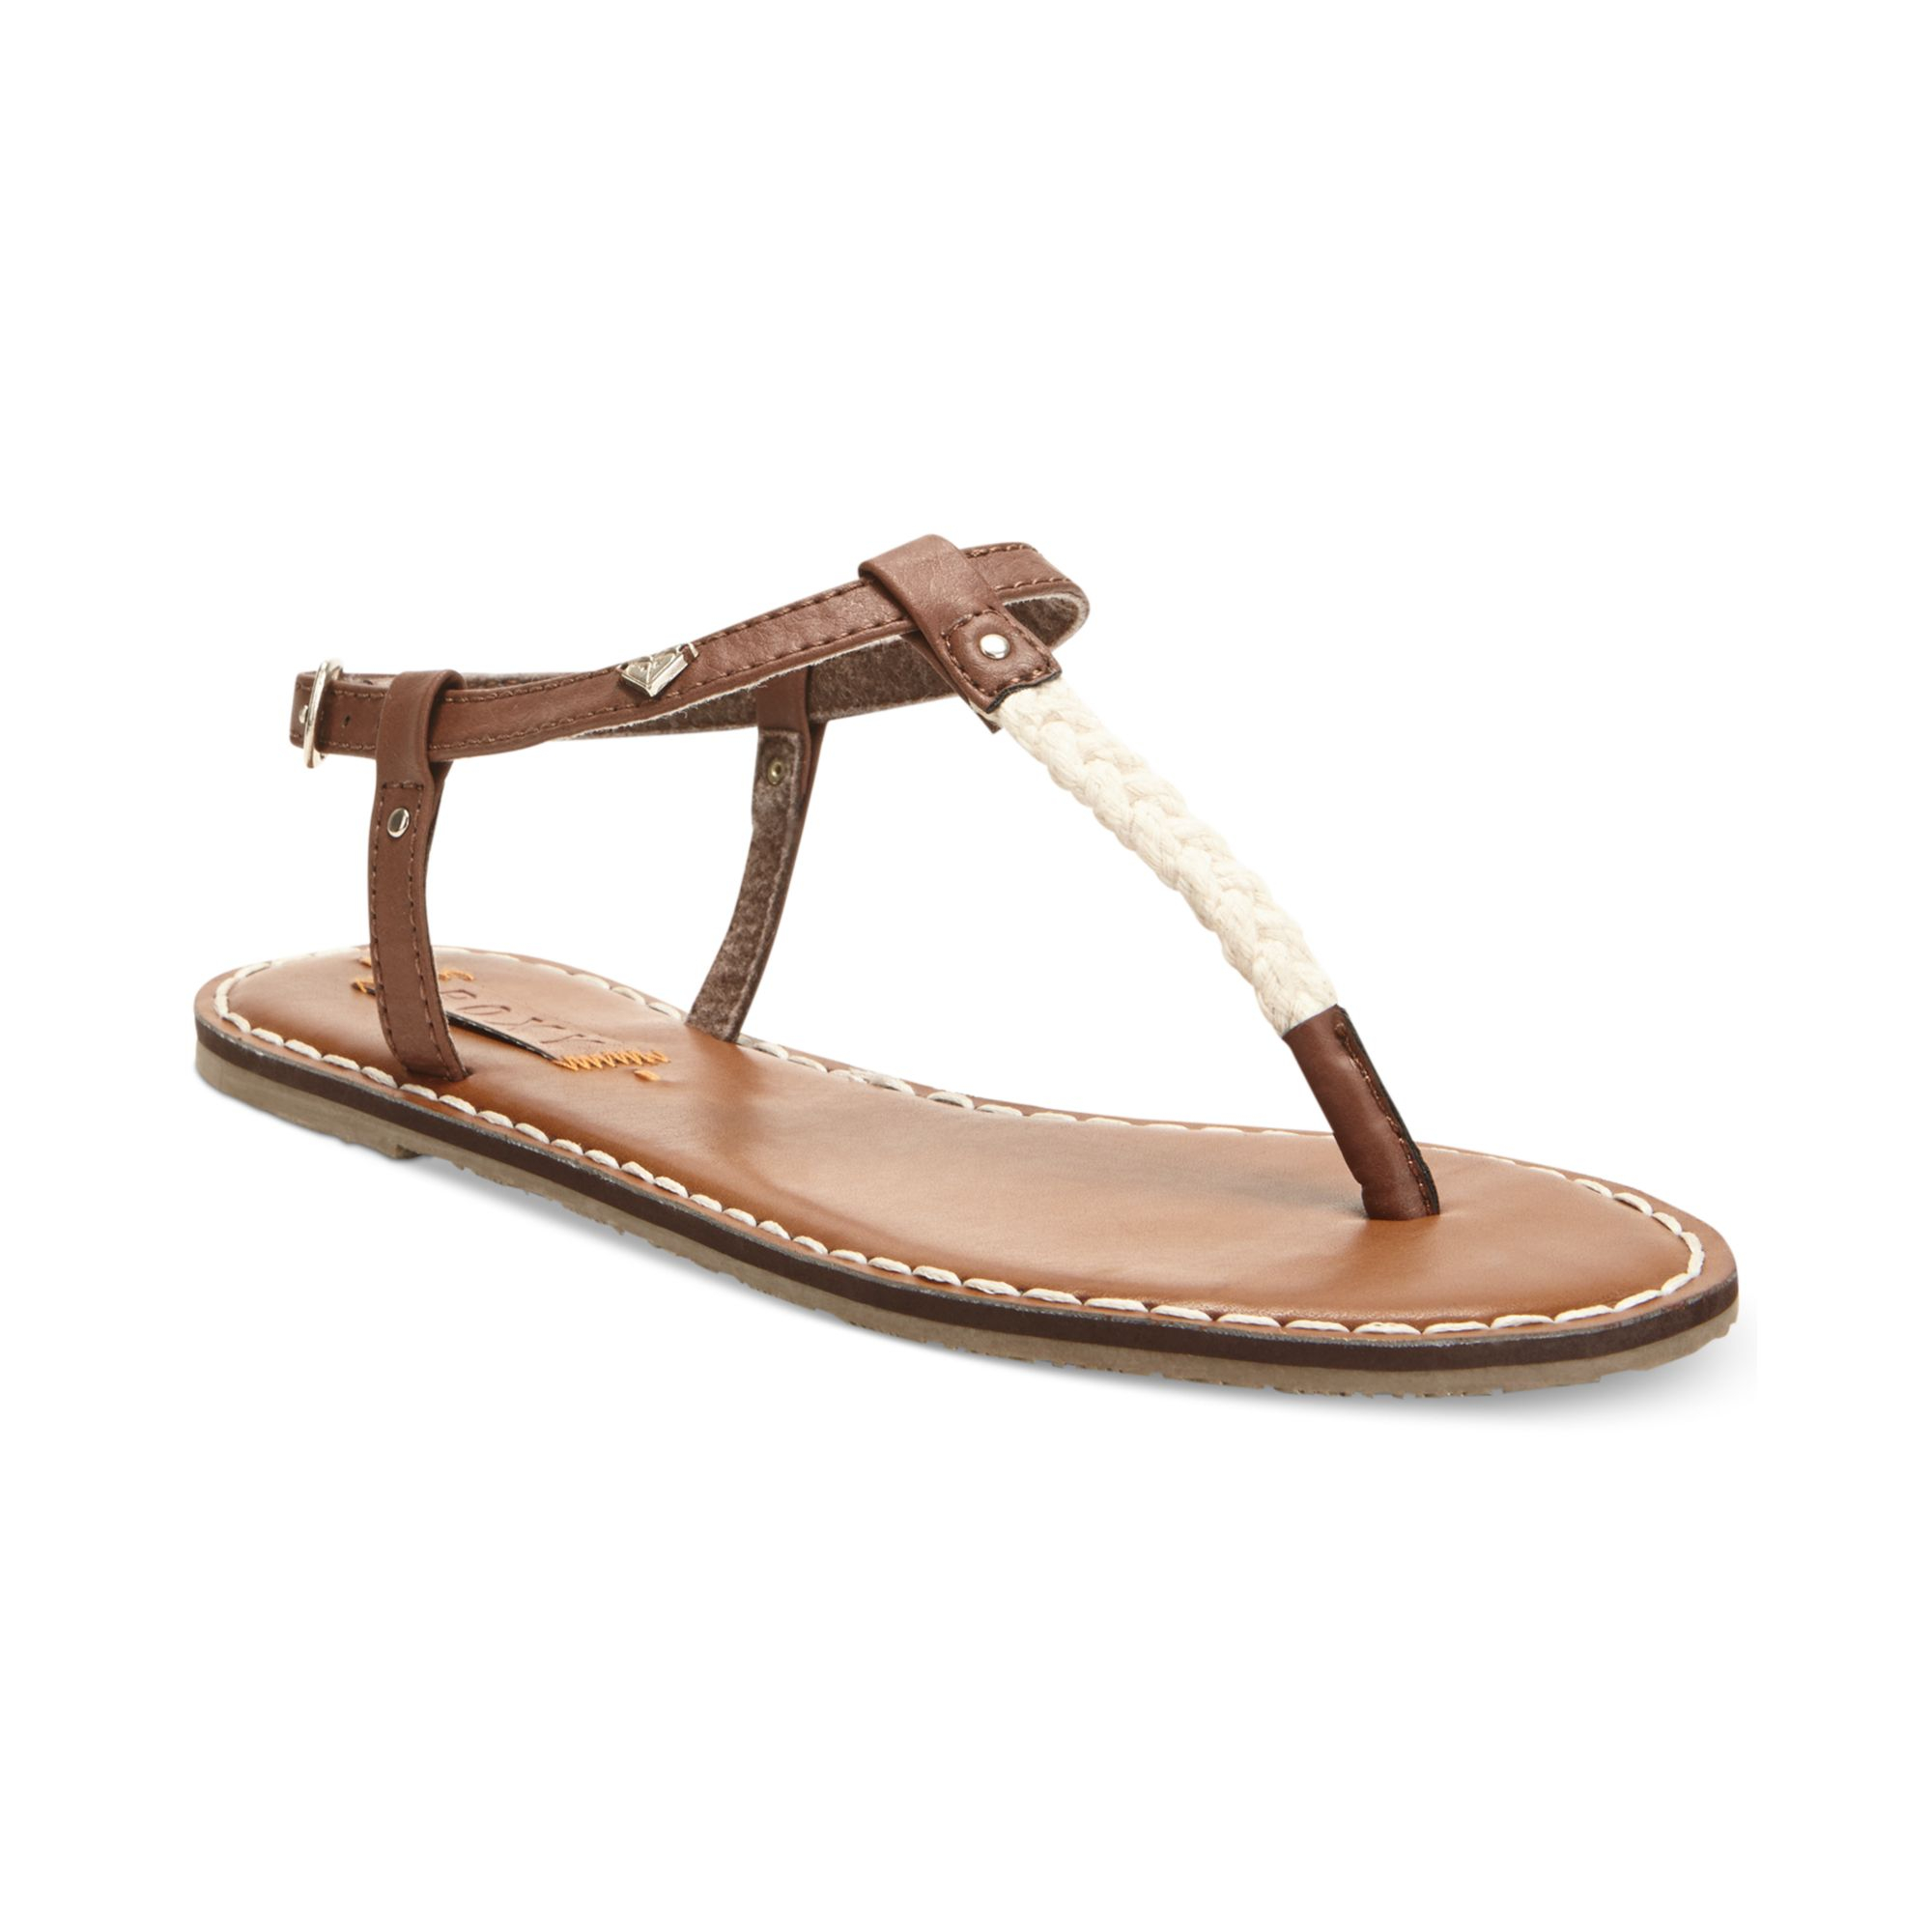 8a5dfcf74573 Lyst - Roxy Sparrow Tstrap Flat Thong Sandals in Brown